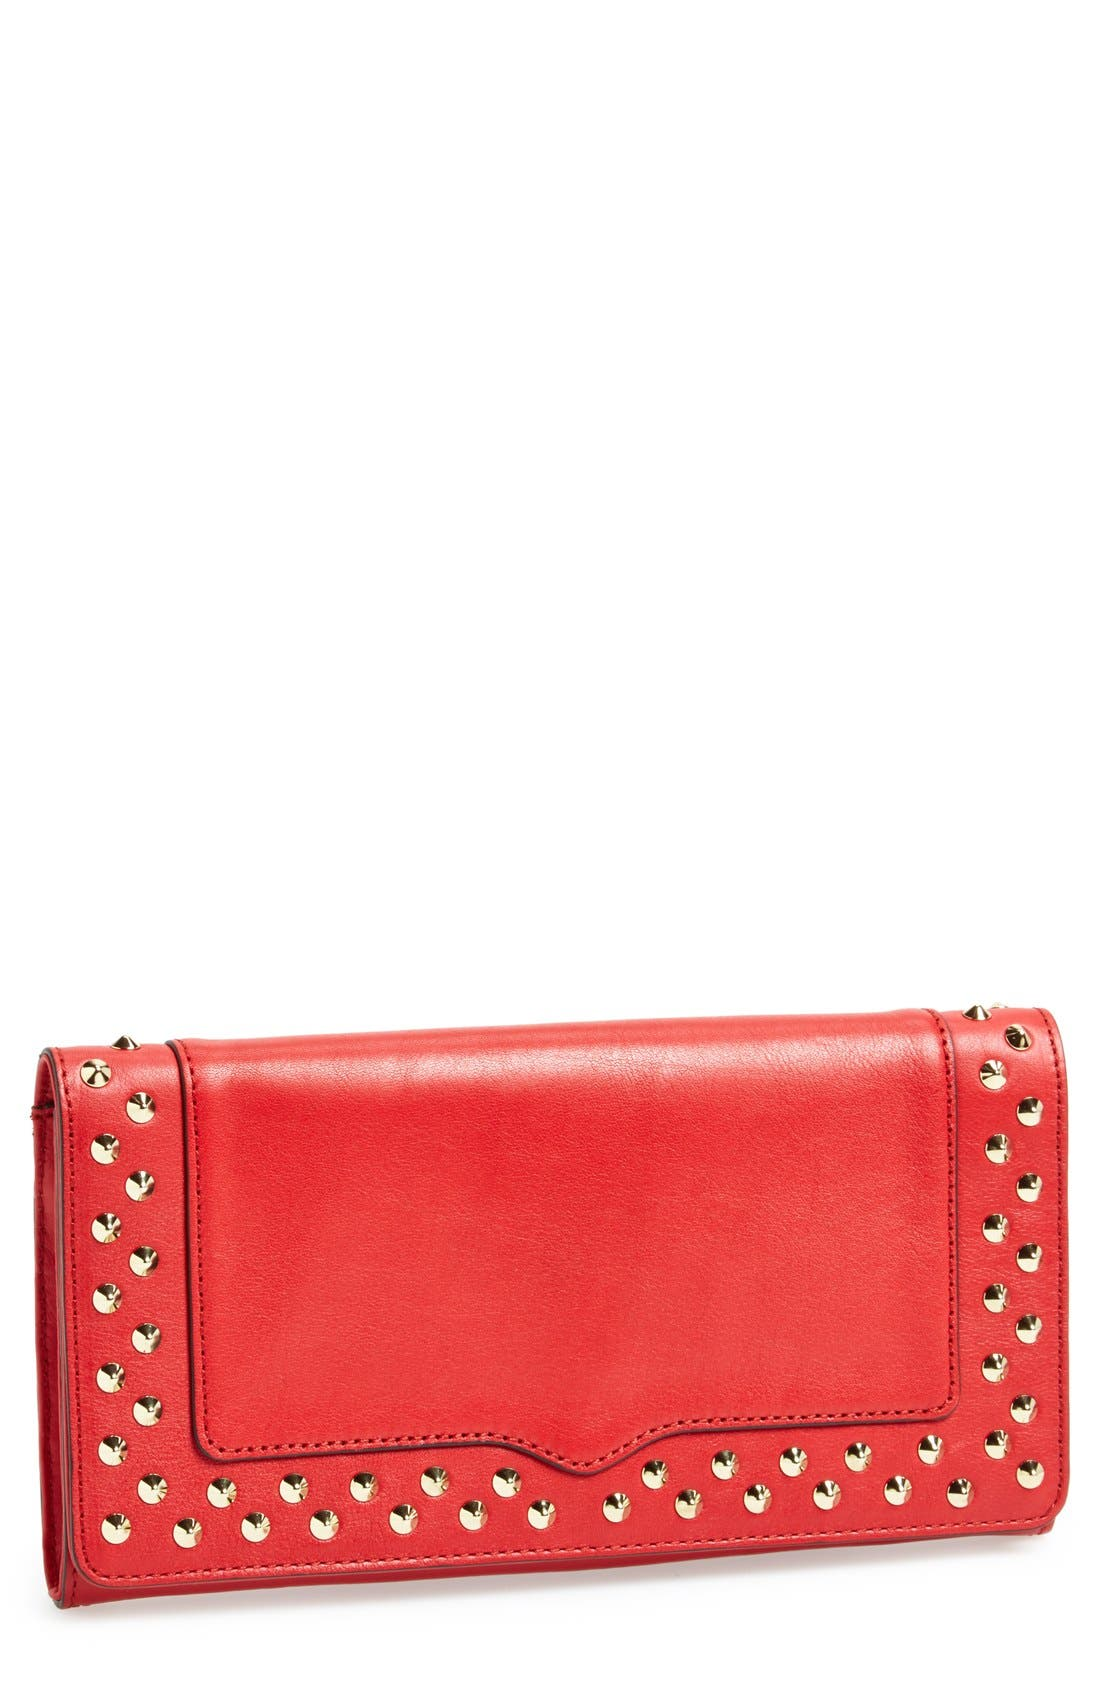 REBECCA MINKOFF,                             'Amorous' Clutch with Studs,                             Main thumbnail 1, color,                             600